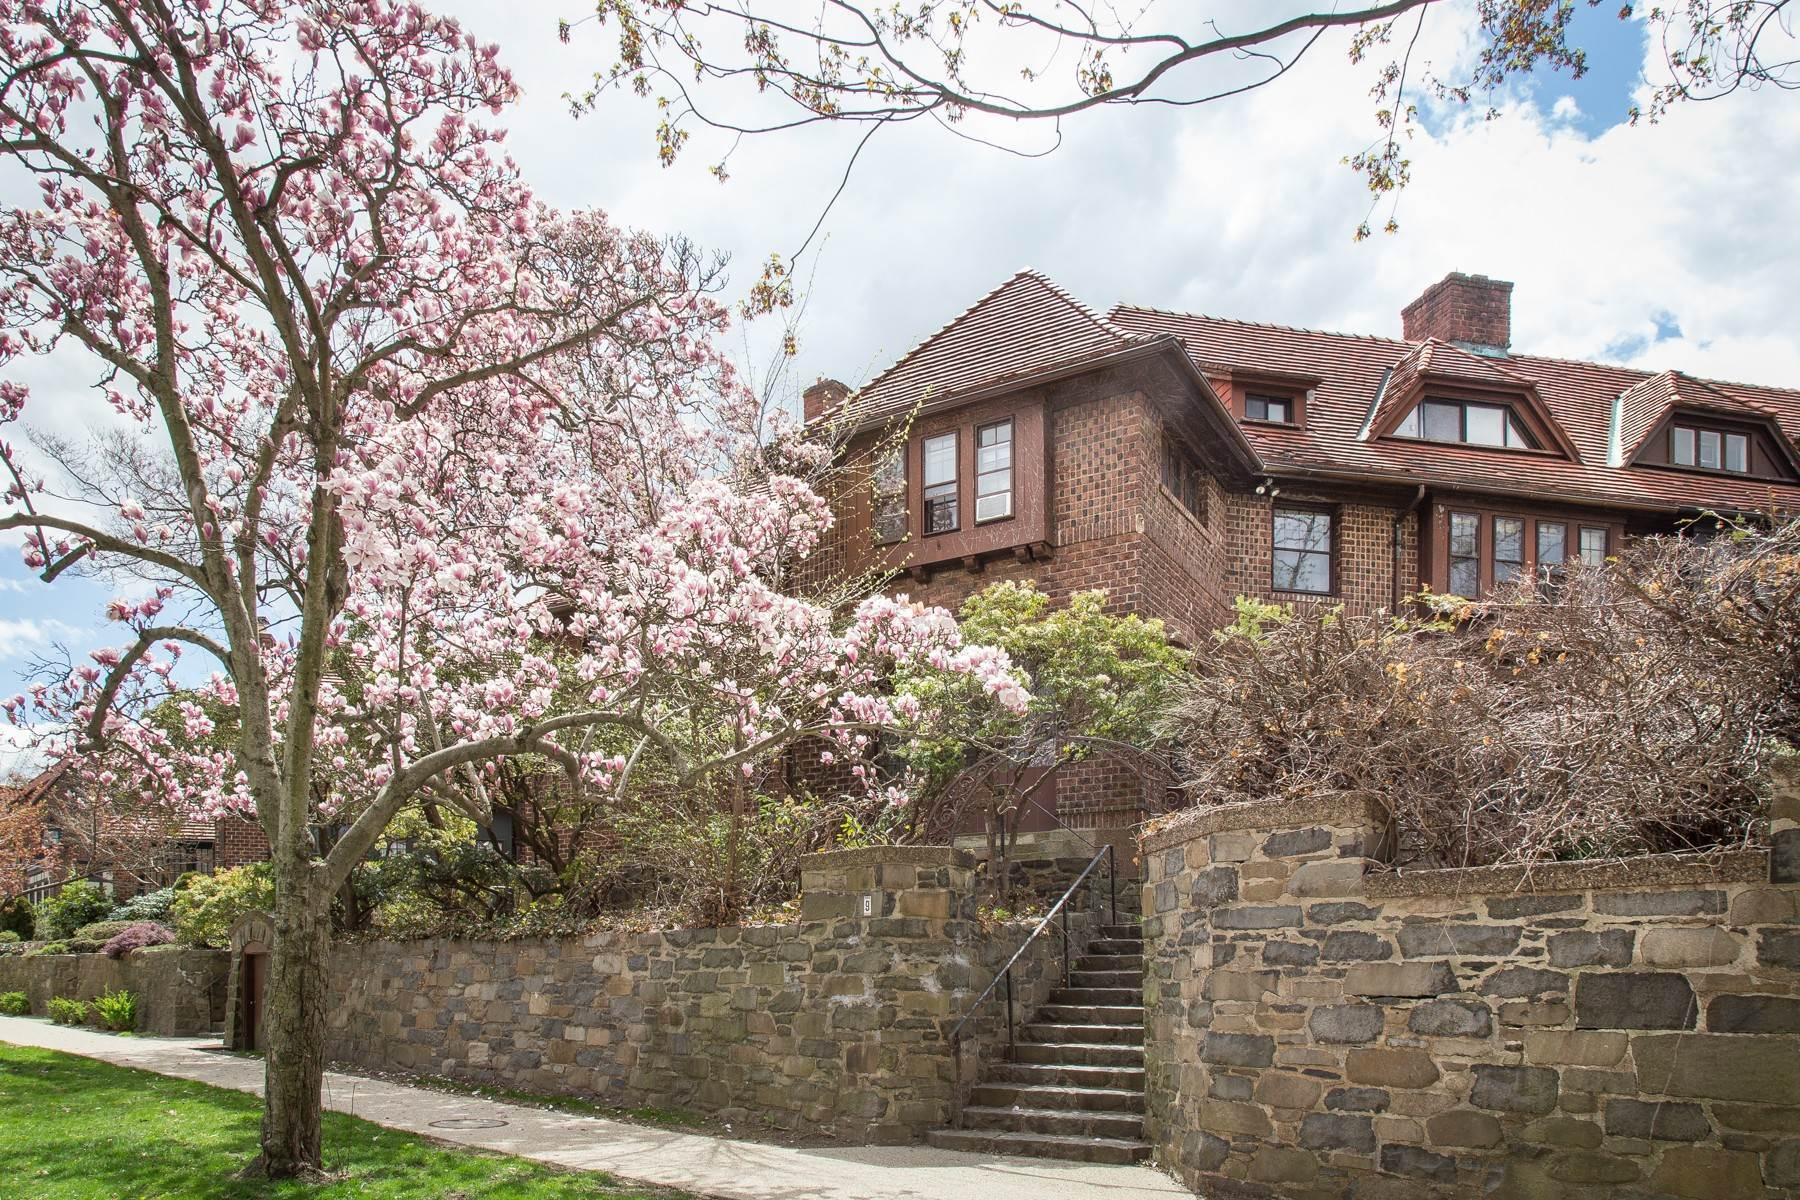 Single Family Homes for Sale at 'STRIKING ORIGINAL ATTERBURY' 9 Markwood Road, Forest Hills Gardens, Forest Hills, New York 11375 United States